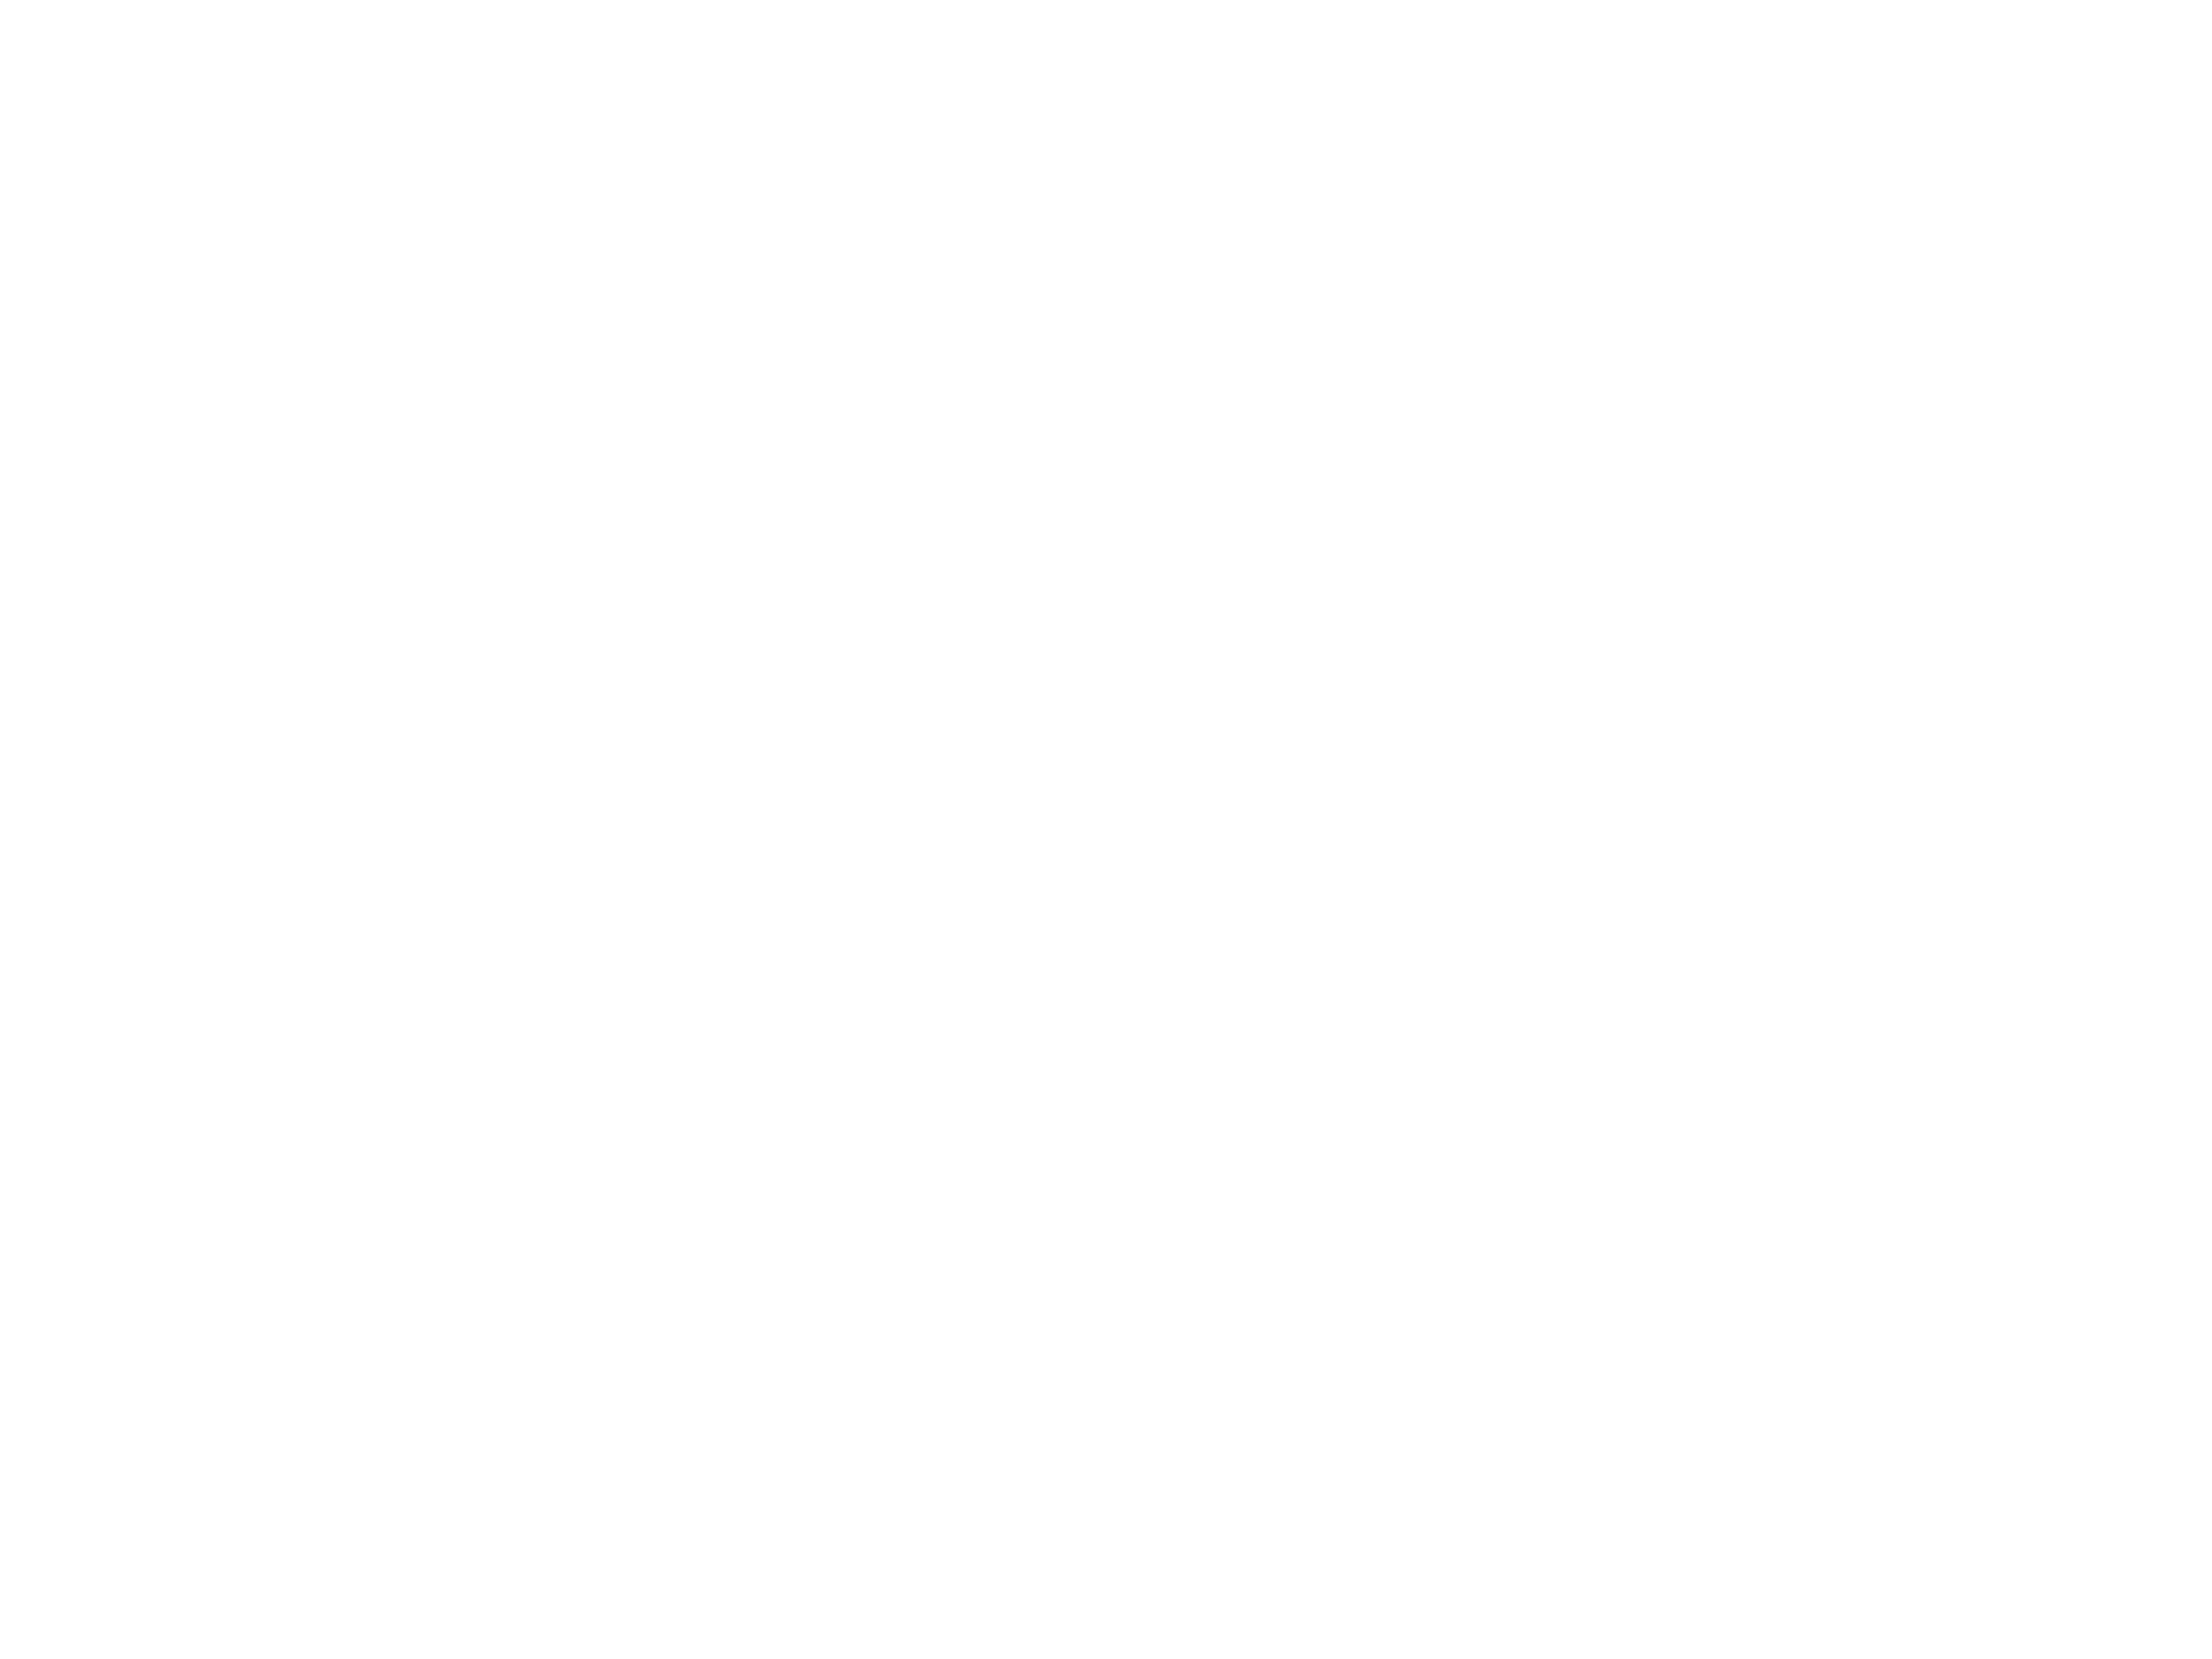 AllieChambersPhotography_White-01.png